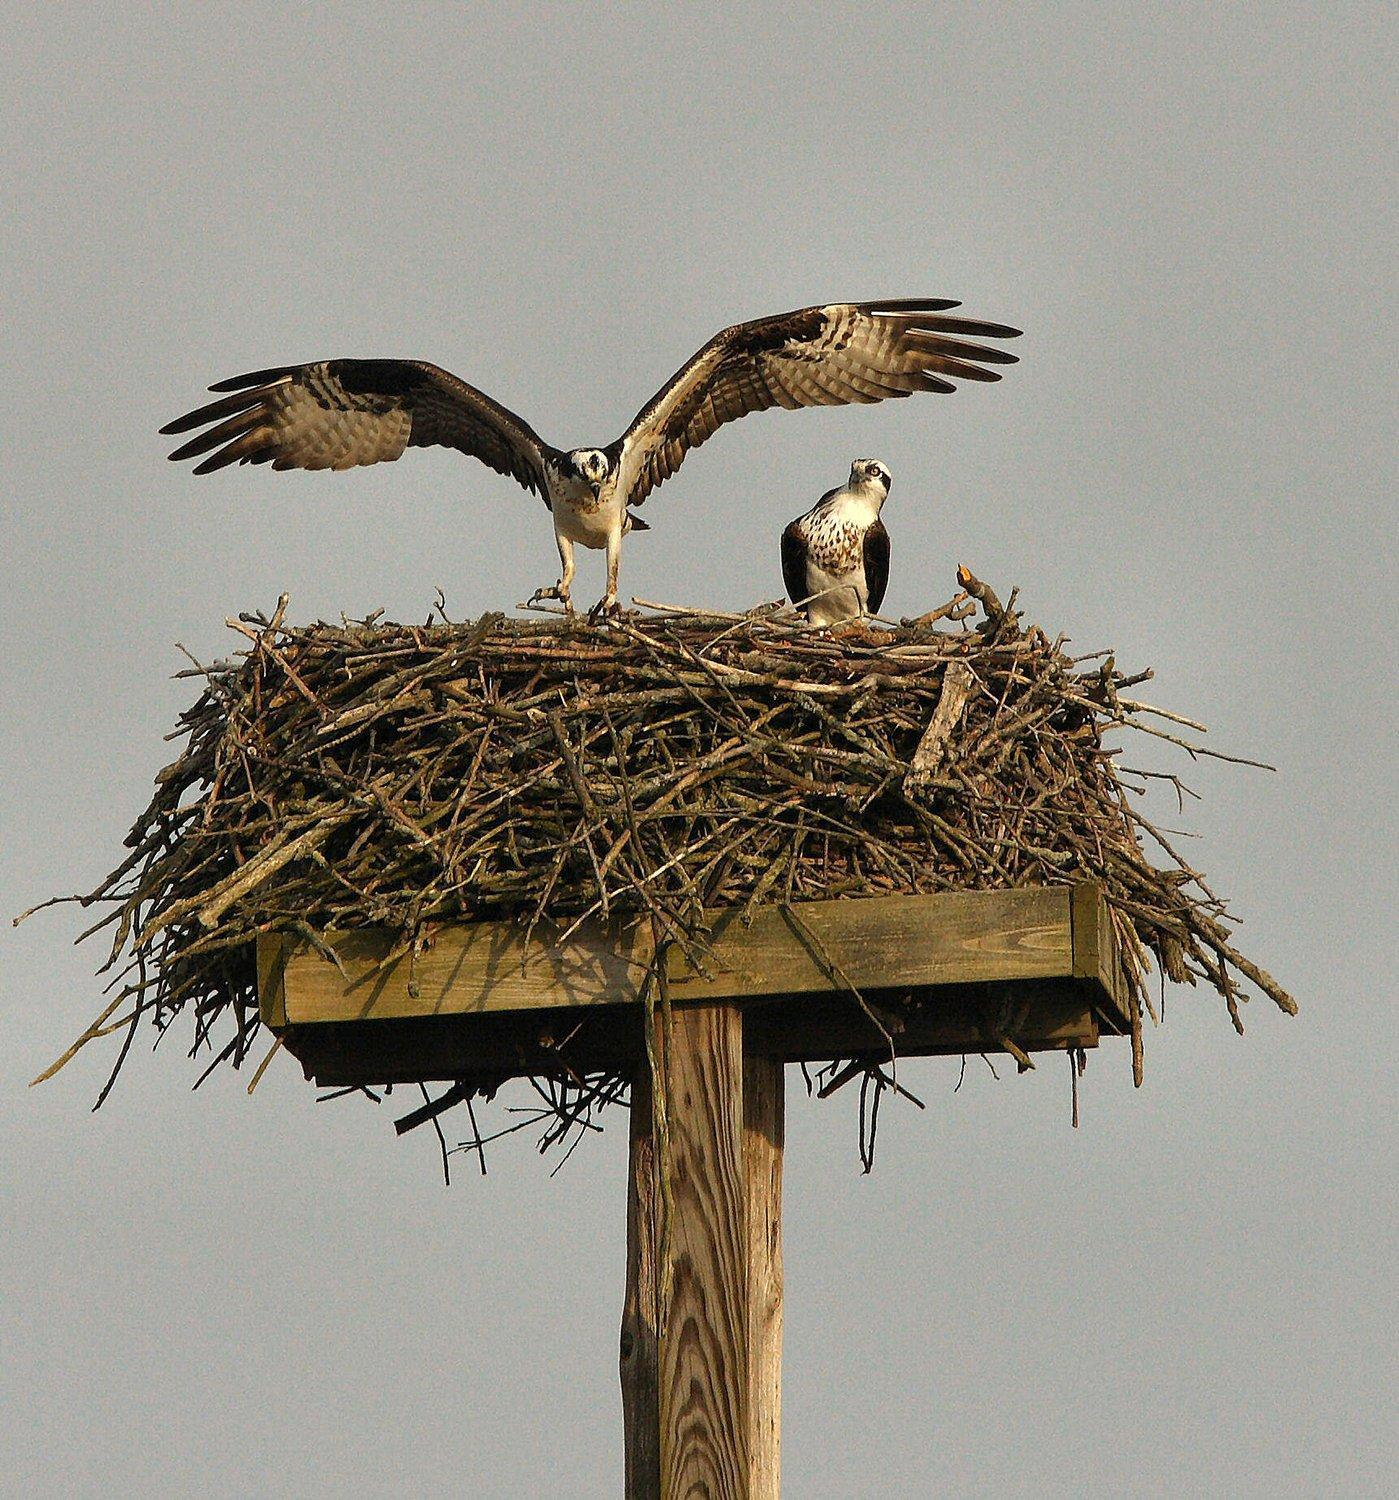 Osprey no longer a threatened species in Pennsylvania - The Morning Call